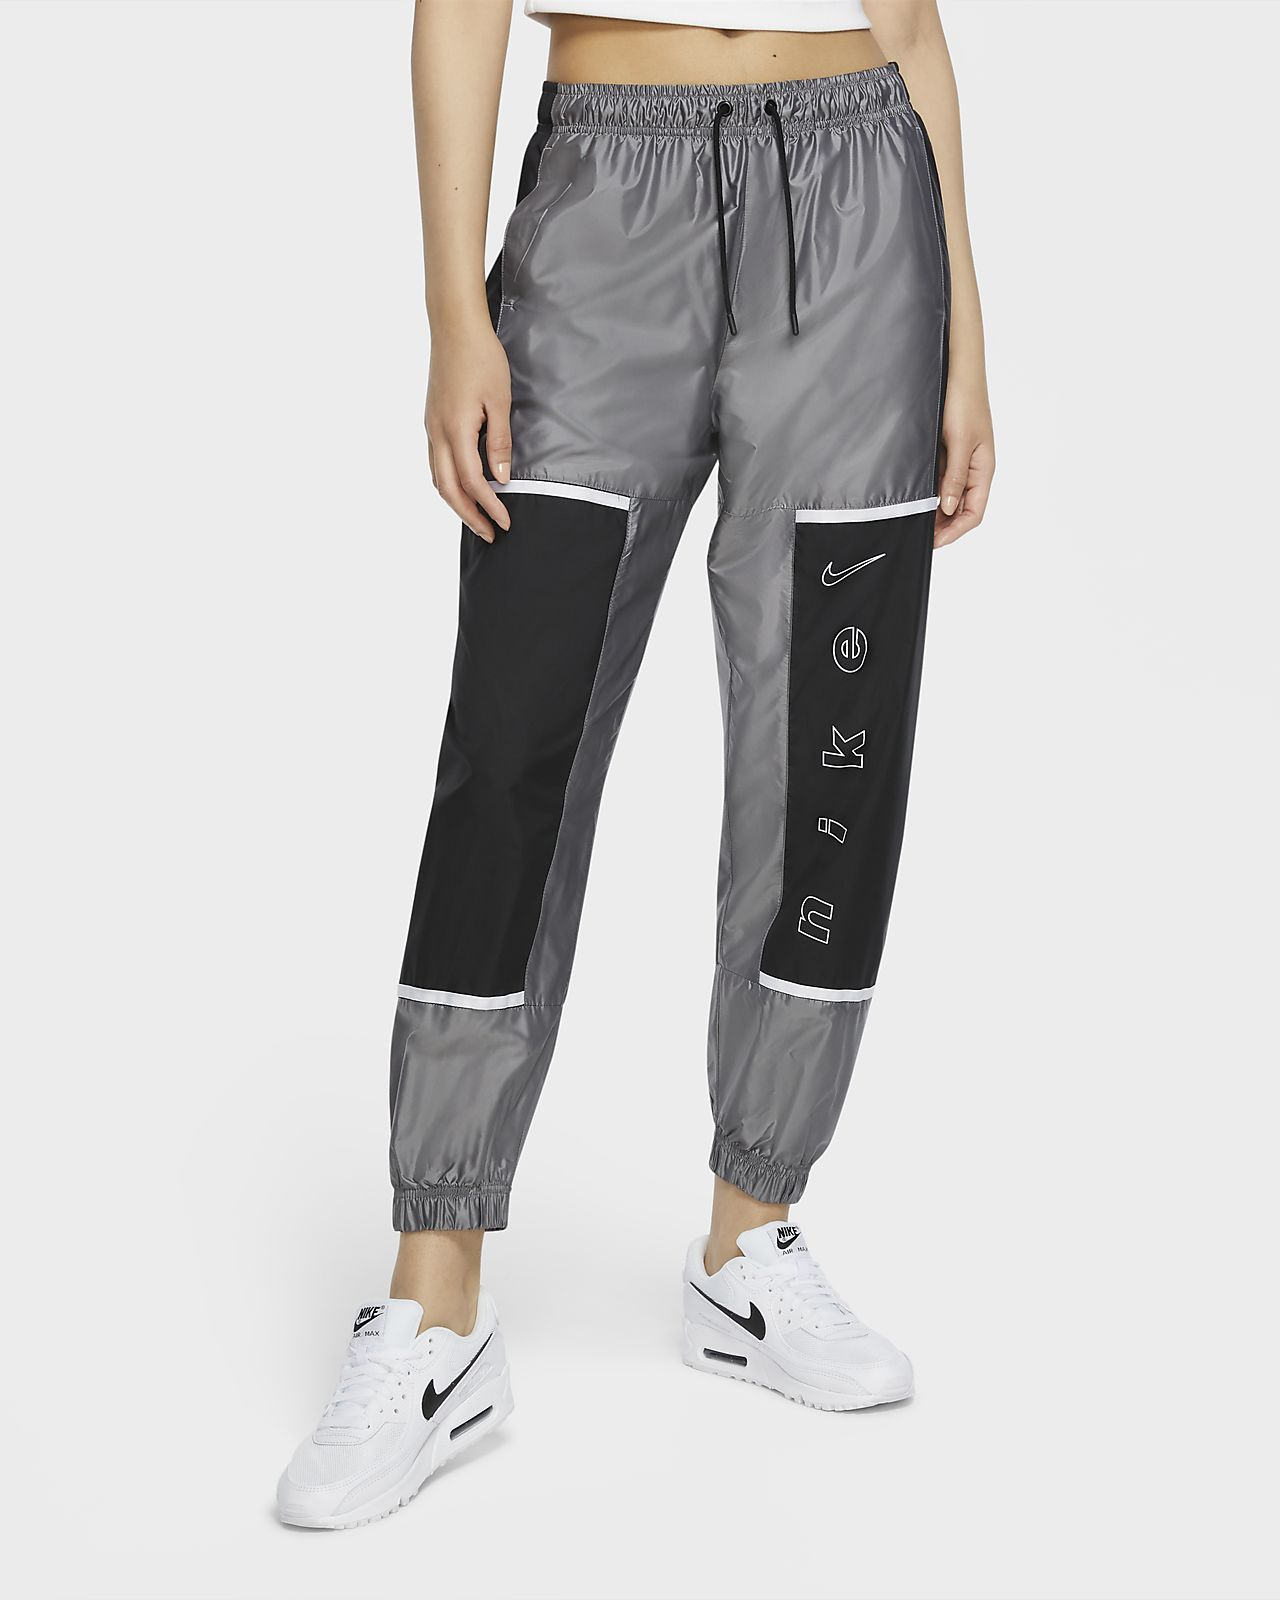 Nike International Damenhose aus Webmaterial